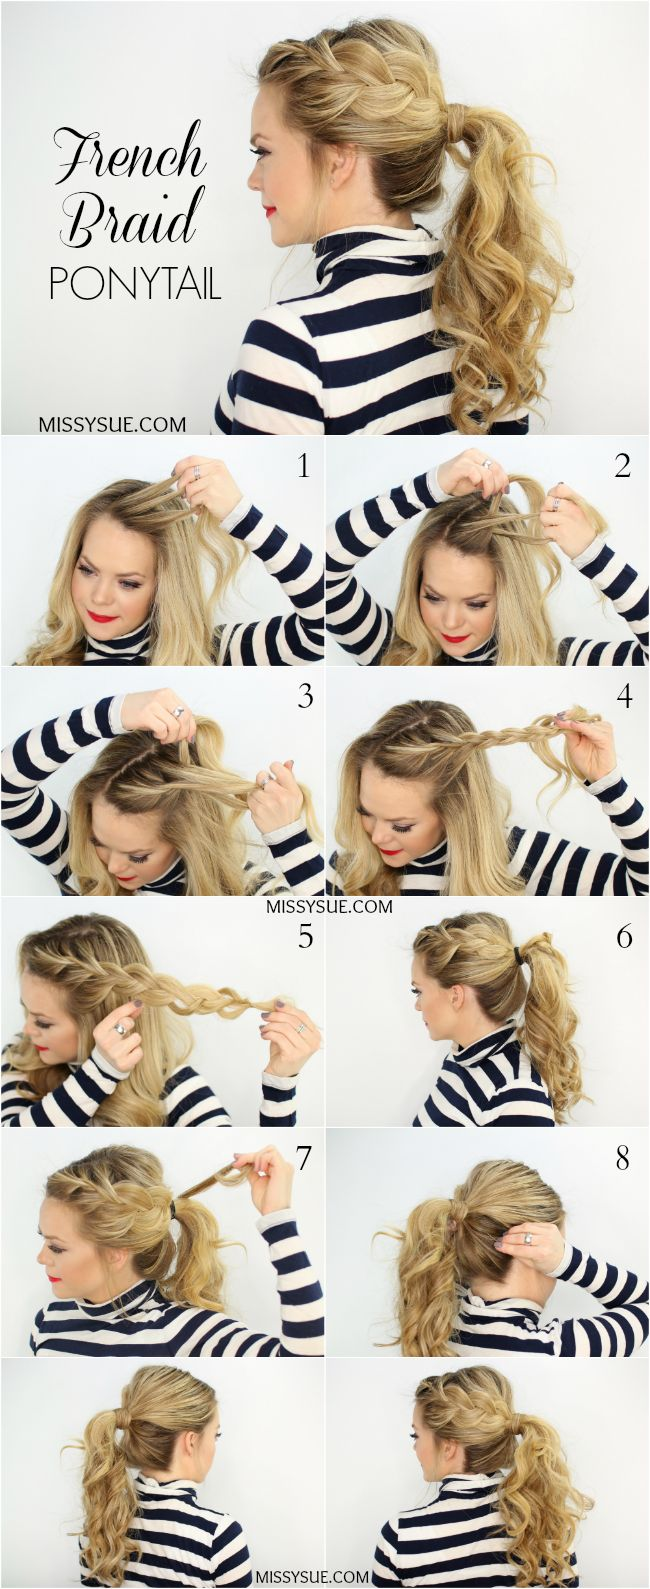 Side-French-Braid-Ponytail-Hairstyle-Tutorial Cute French Braid Hairstyles for Girls